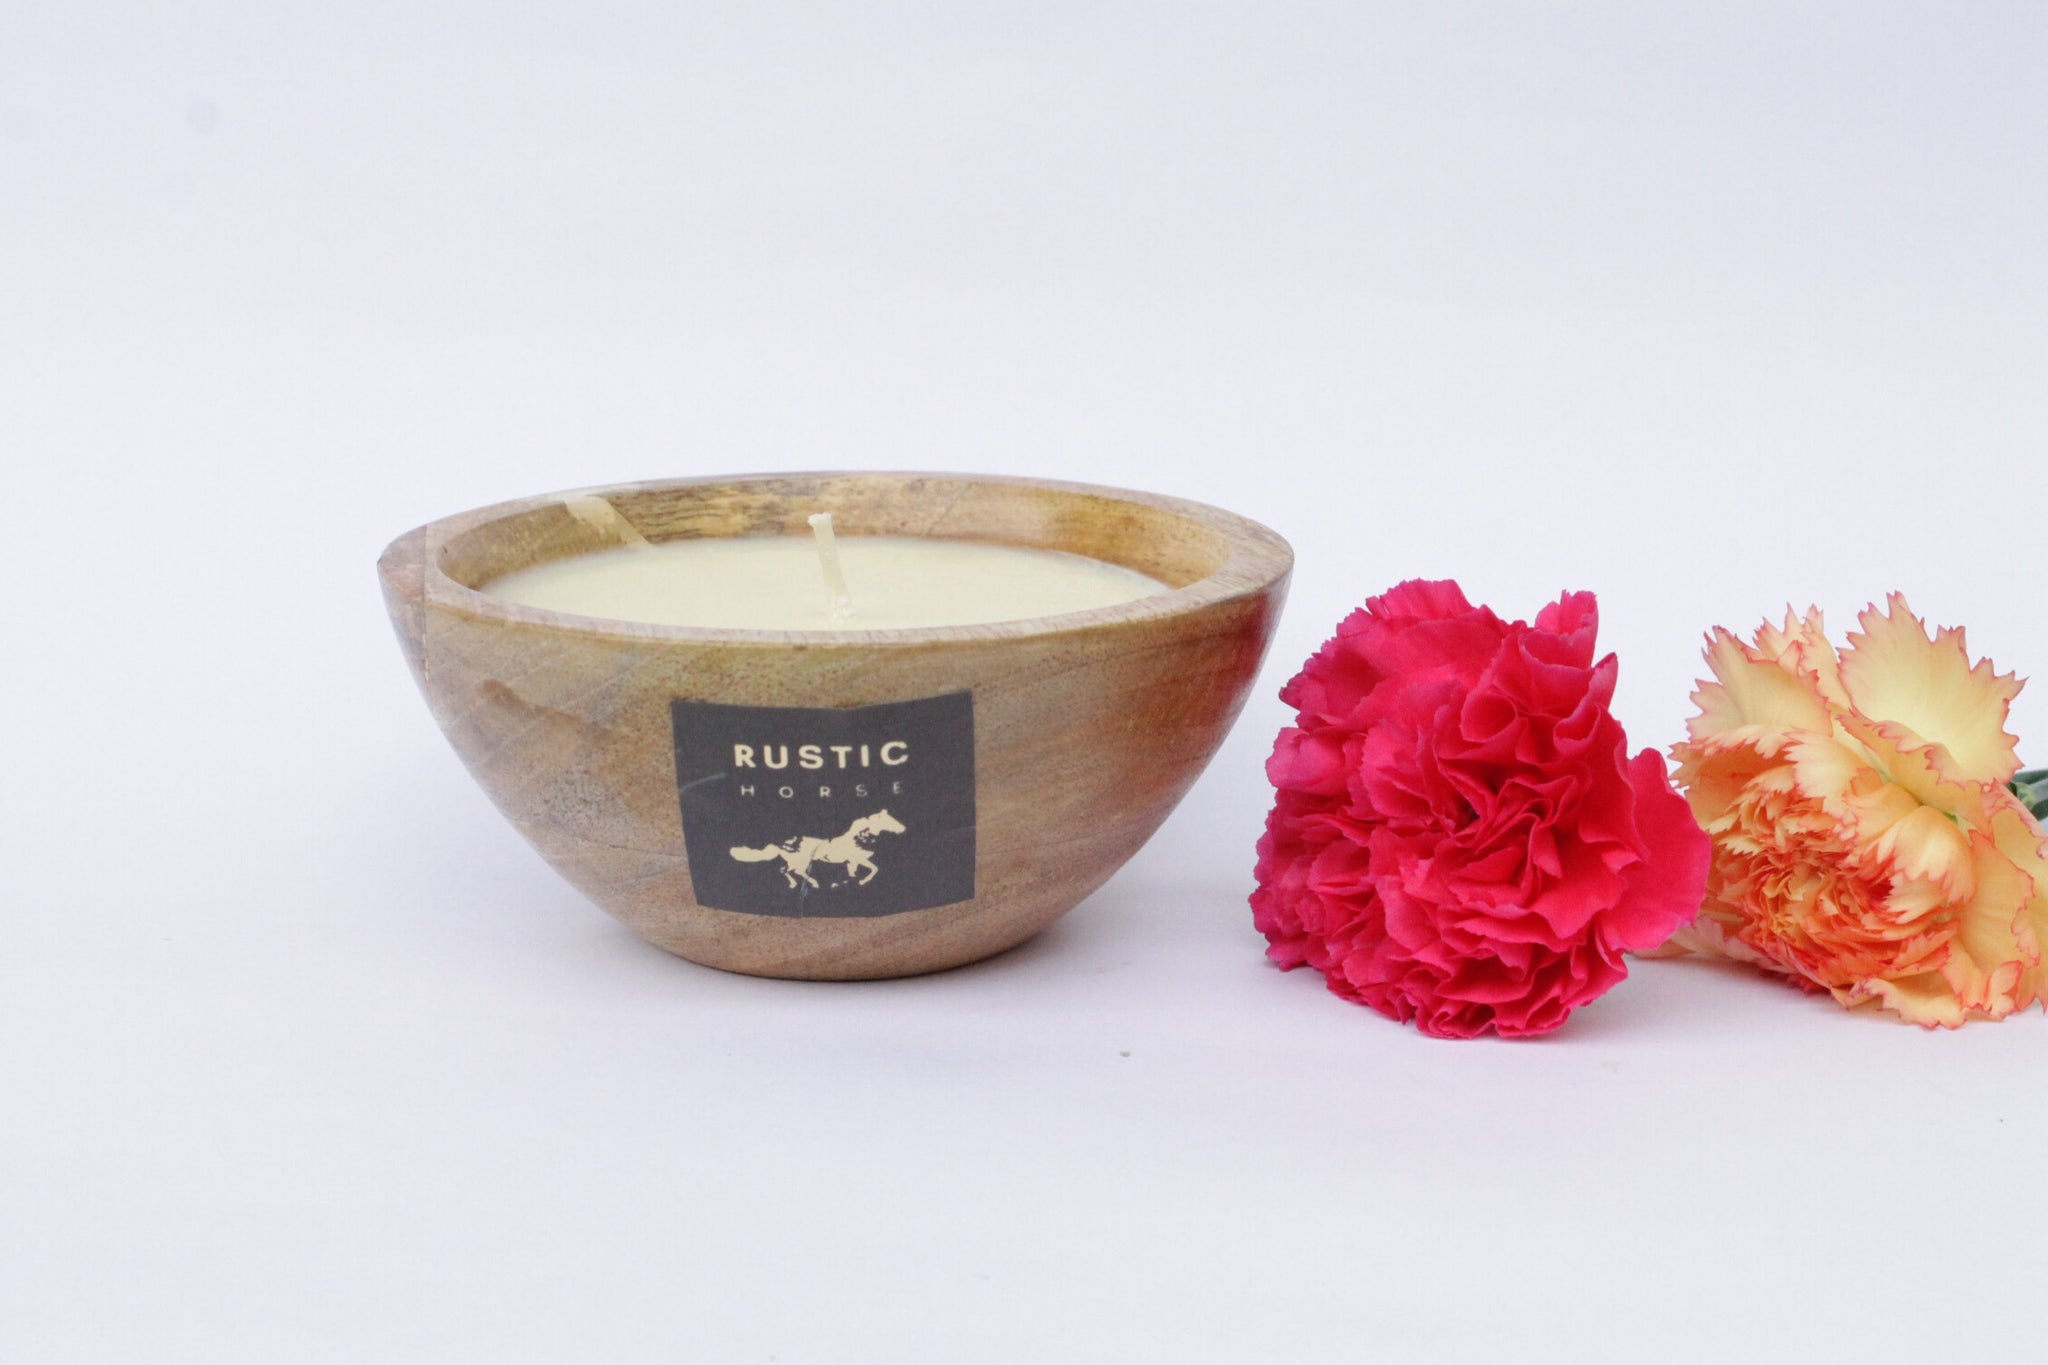 Rustic Horse Candles Spa candle aromatherapy stress relief soy Votive wax scented candle| Scented Candles for Bedroom| Long Lasting Aroma with the Finest Wax Blend - Factoh